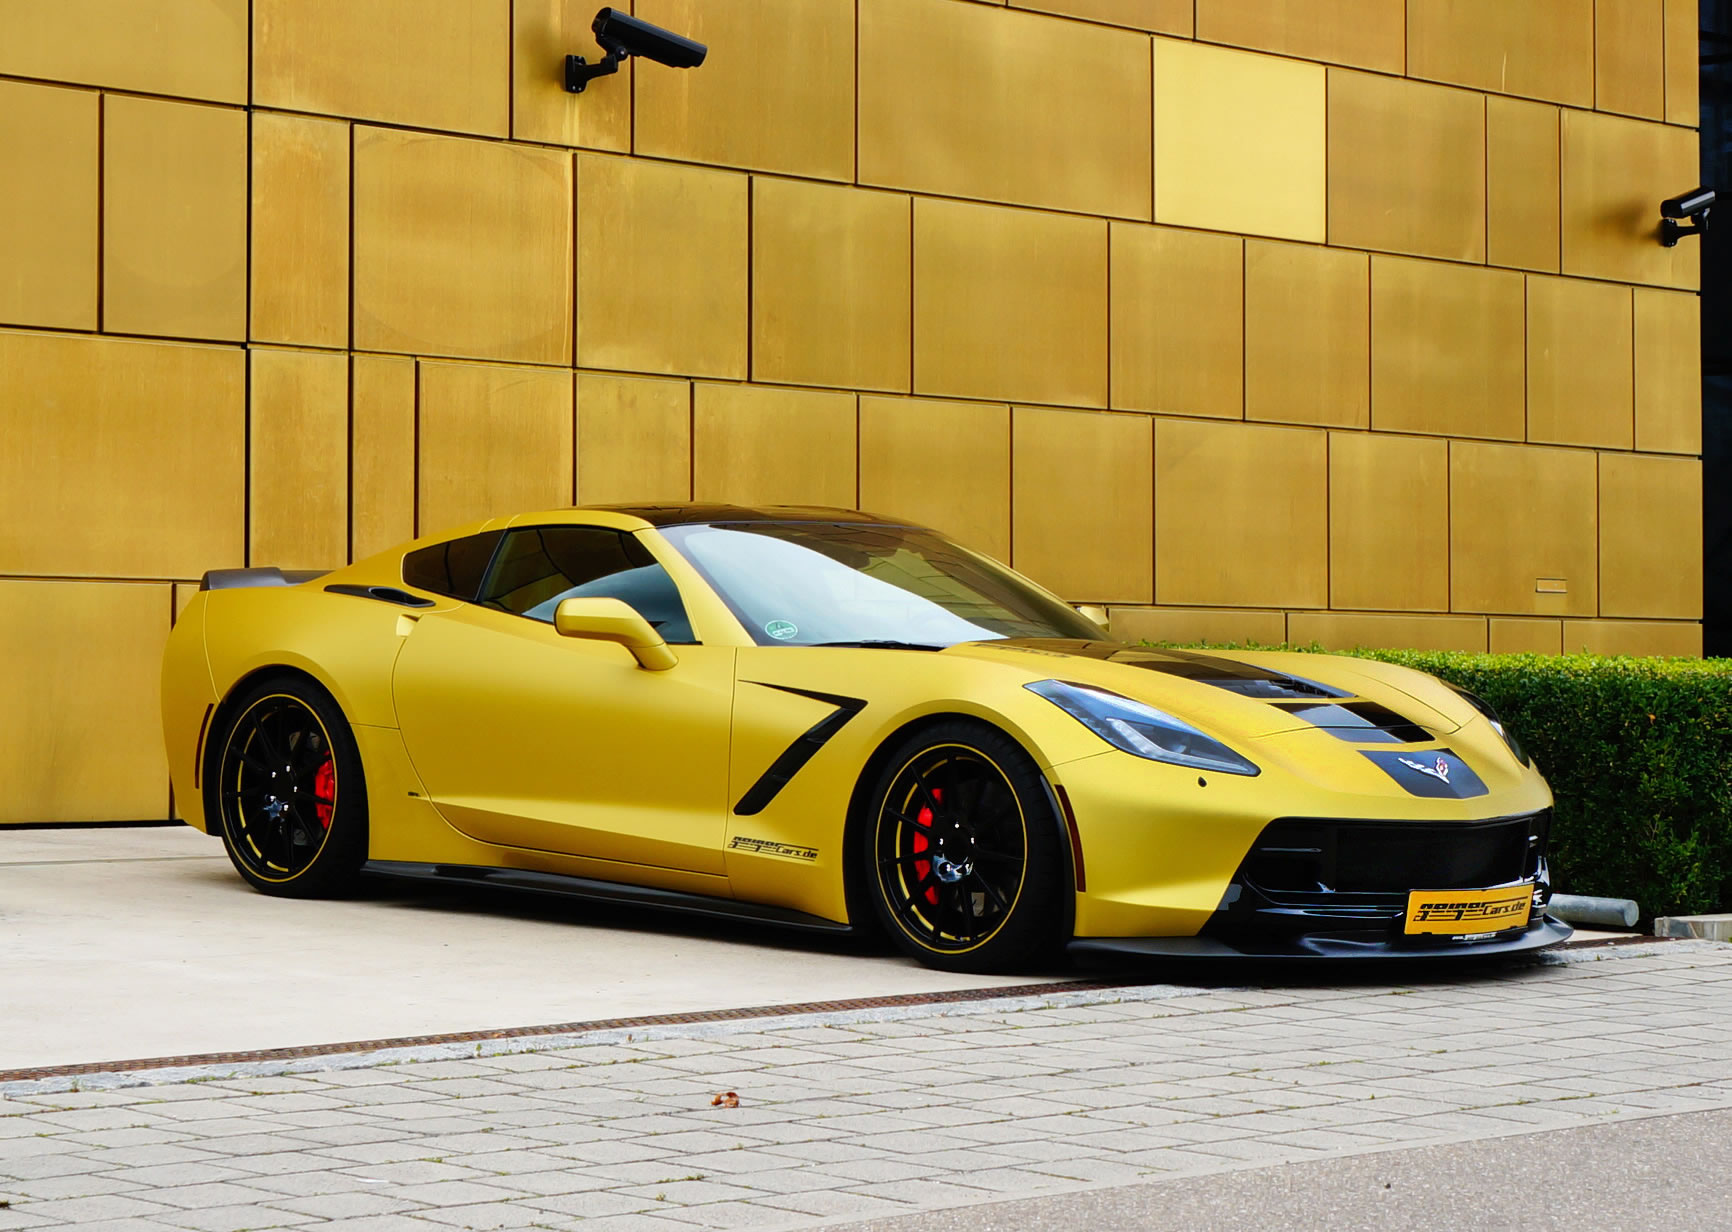 Ford Mustang Hennessey >> 2015 Chevrolet Corvette by GeigerCars - front photo, Motorsport Gold color, size 1732 x 1232, nr ...